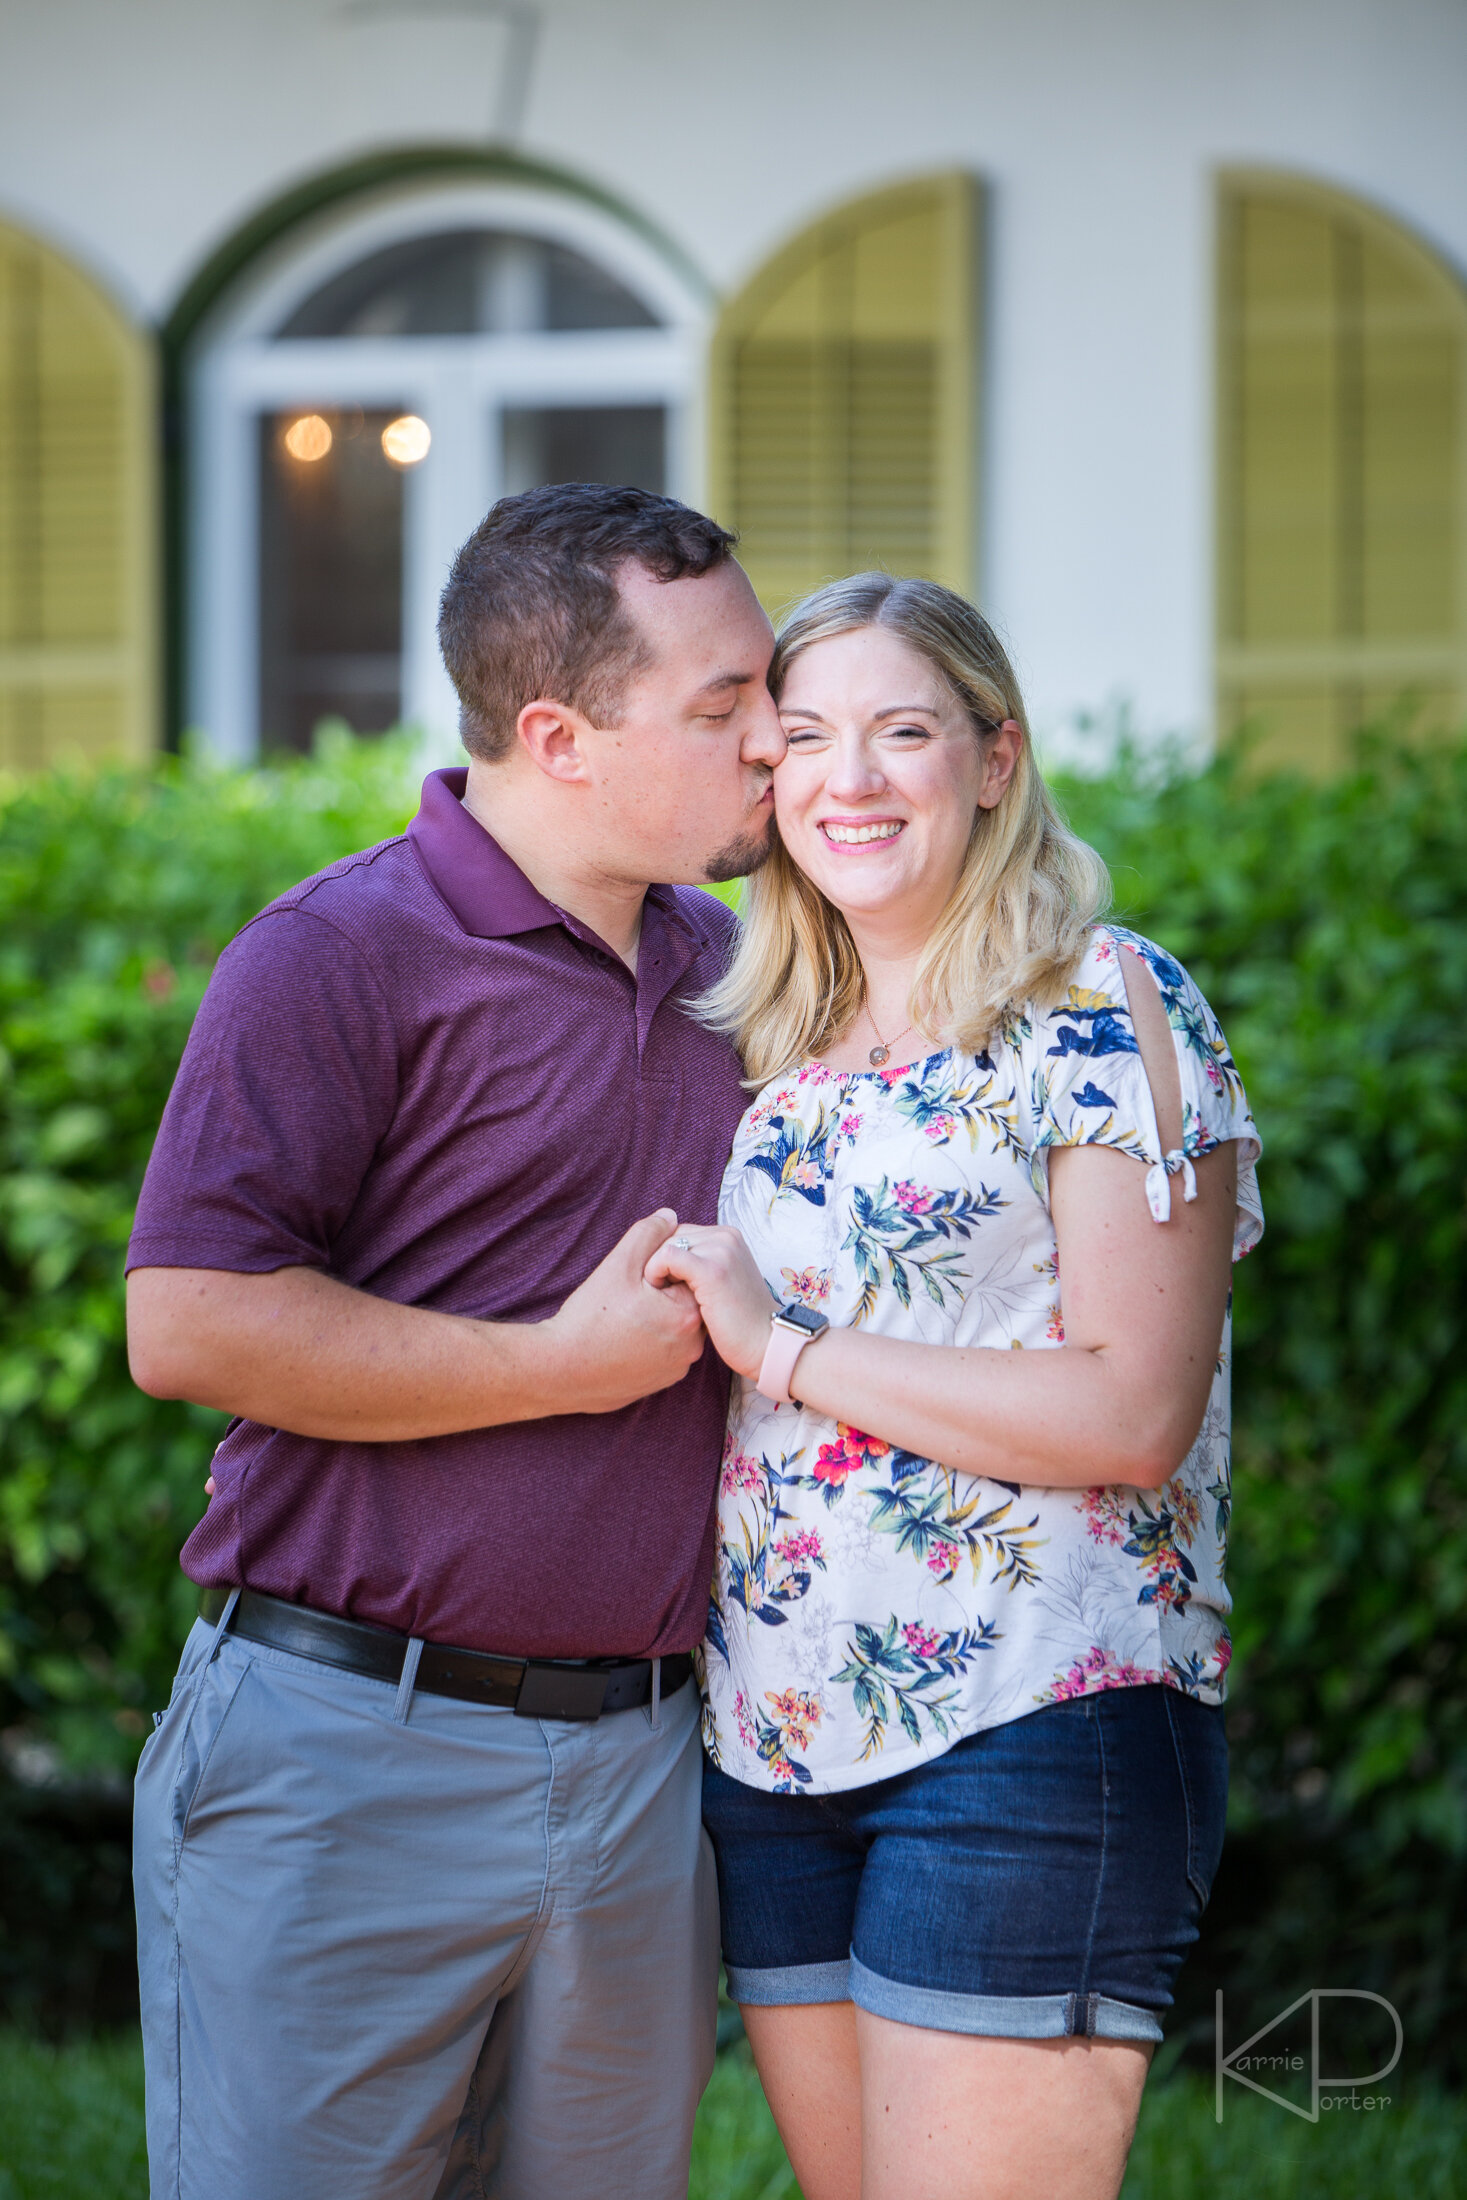 She said yes at the Hemingway Home and Museum in Key West